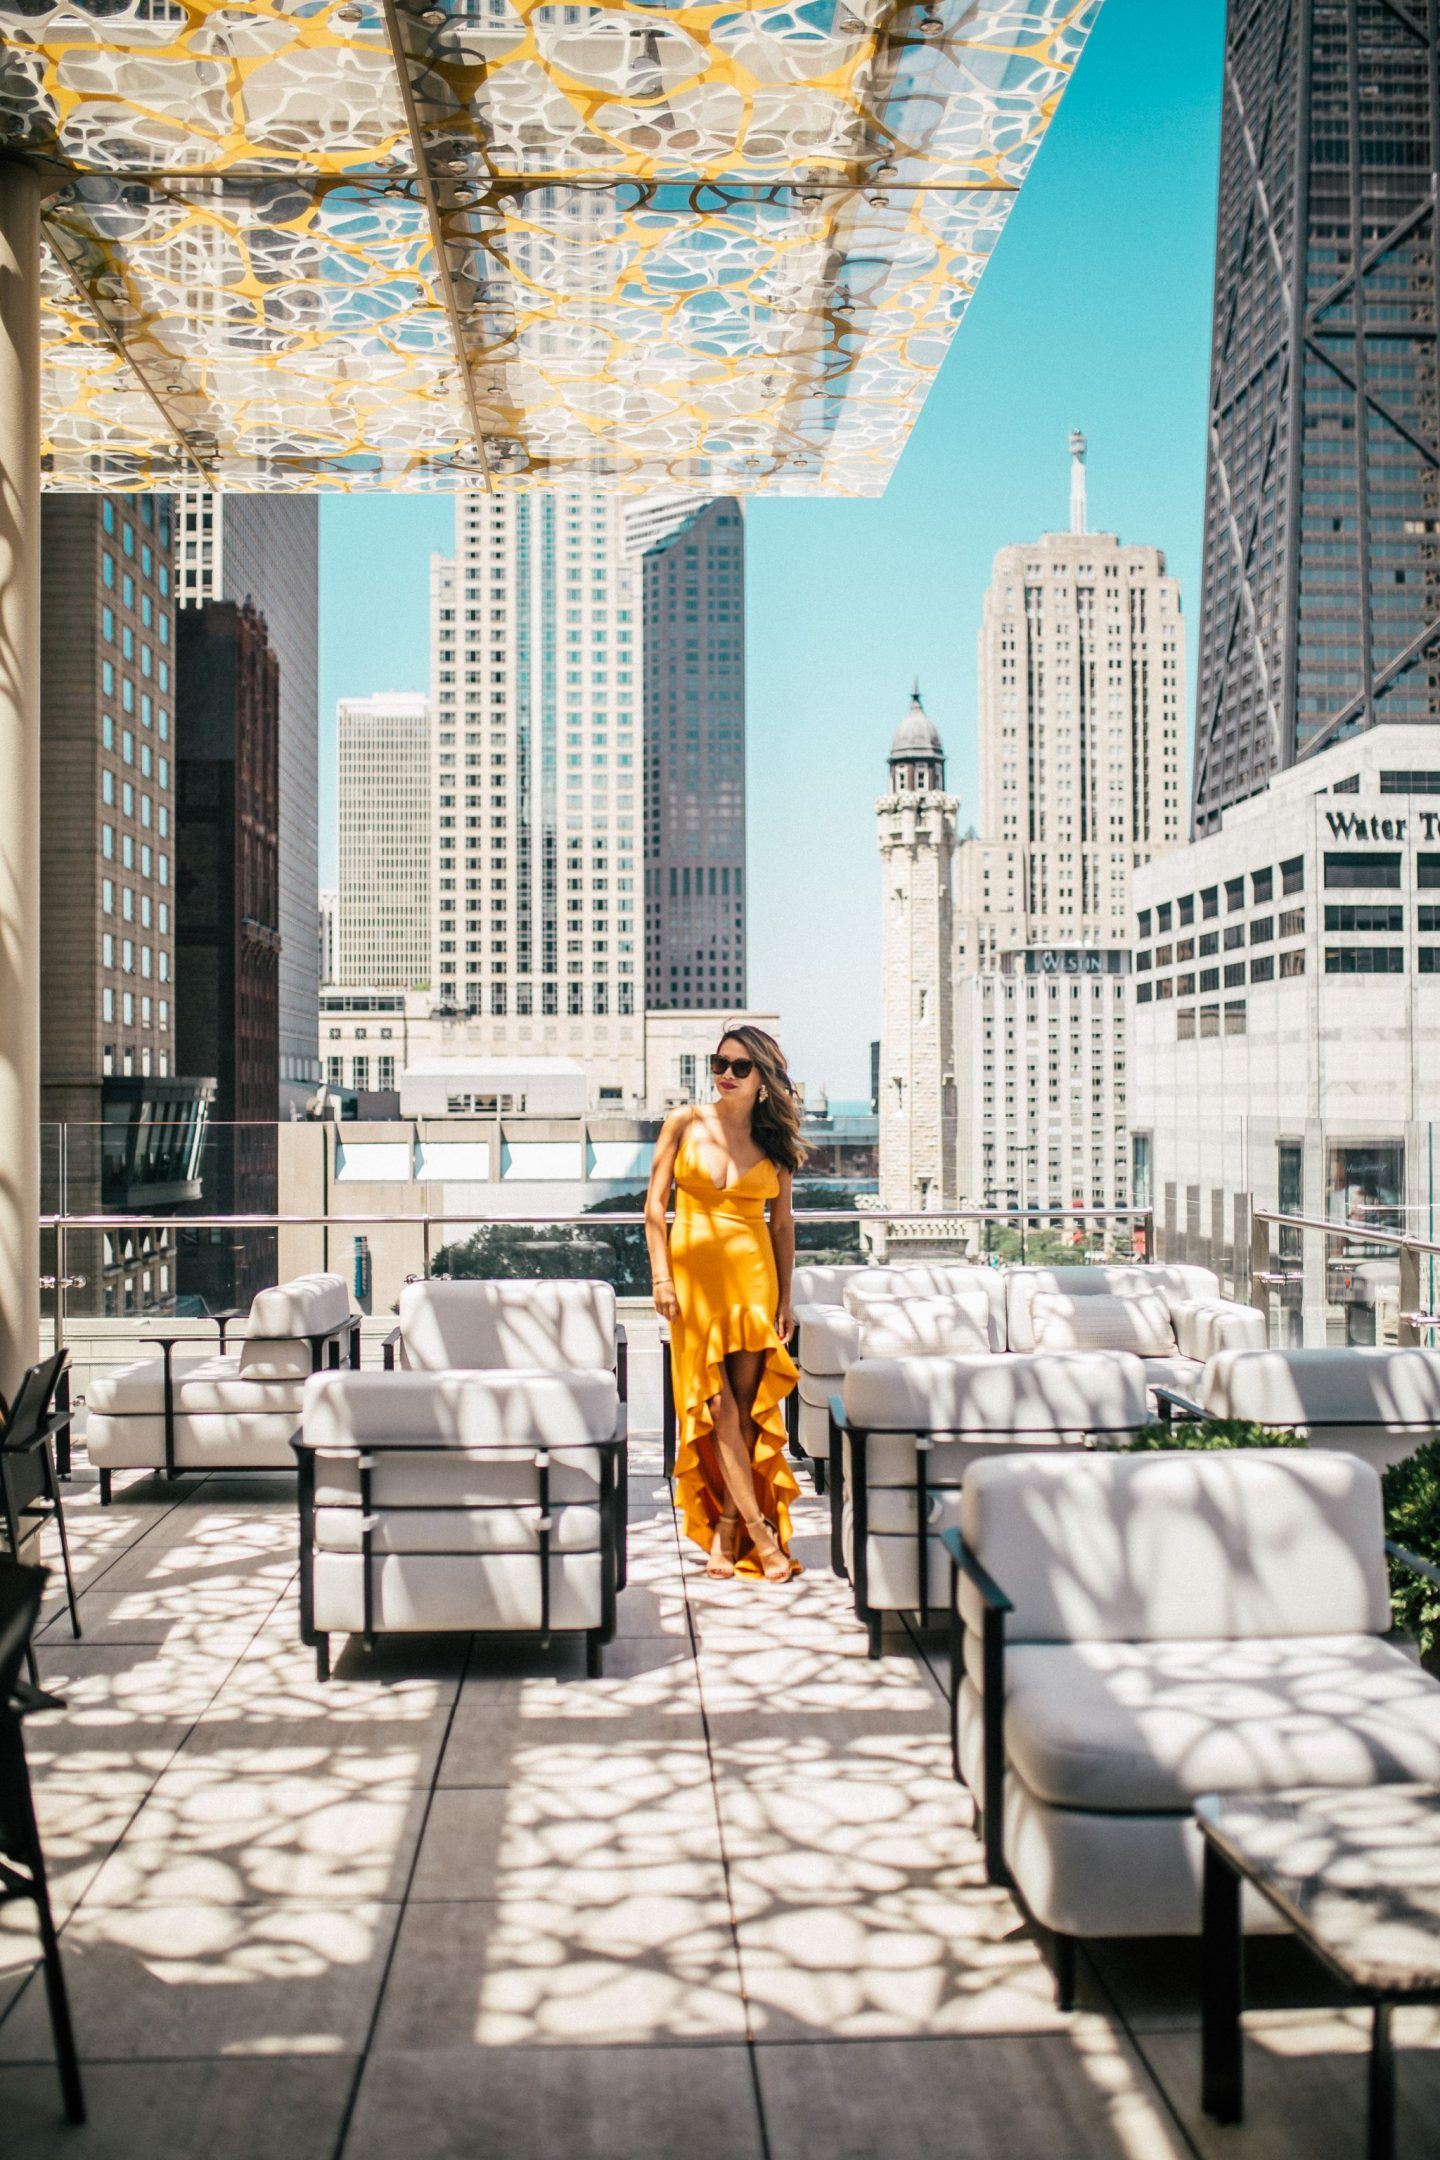 Jennifer Worman, Best Rooftop Chicago, Z Bar Peninsula Chicago, Best blogger Chicago, Fashion chicago blogger, 25 things you didn't know about Jennifer Worman